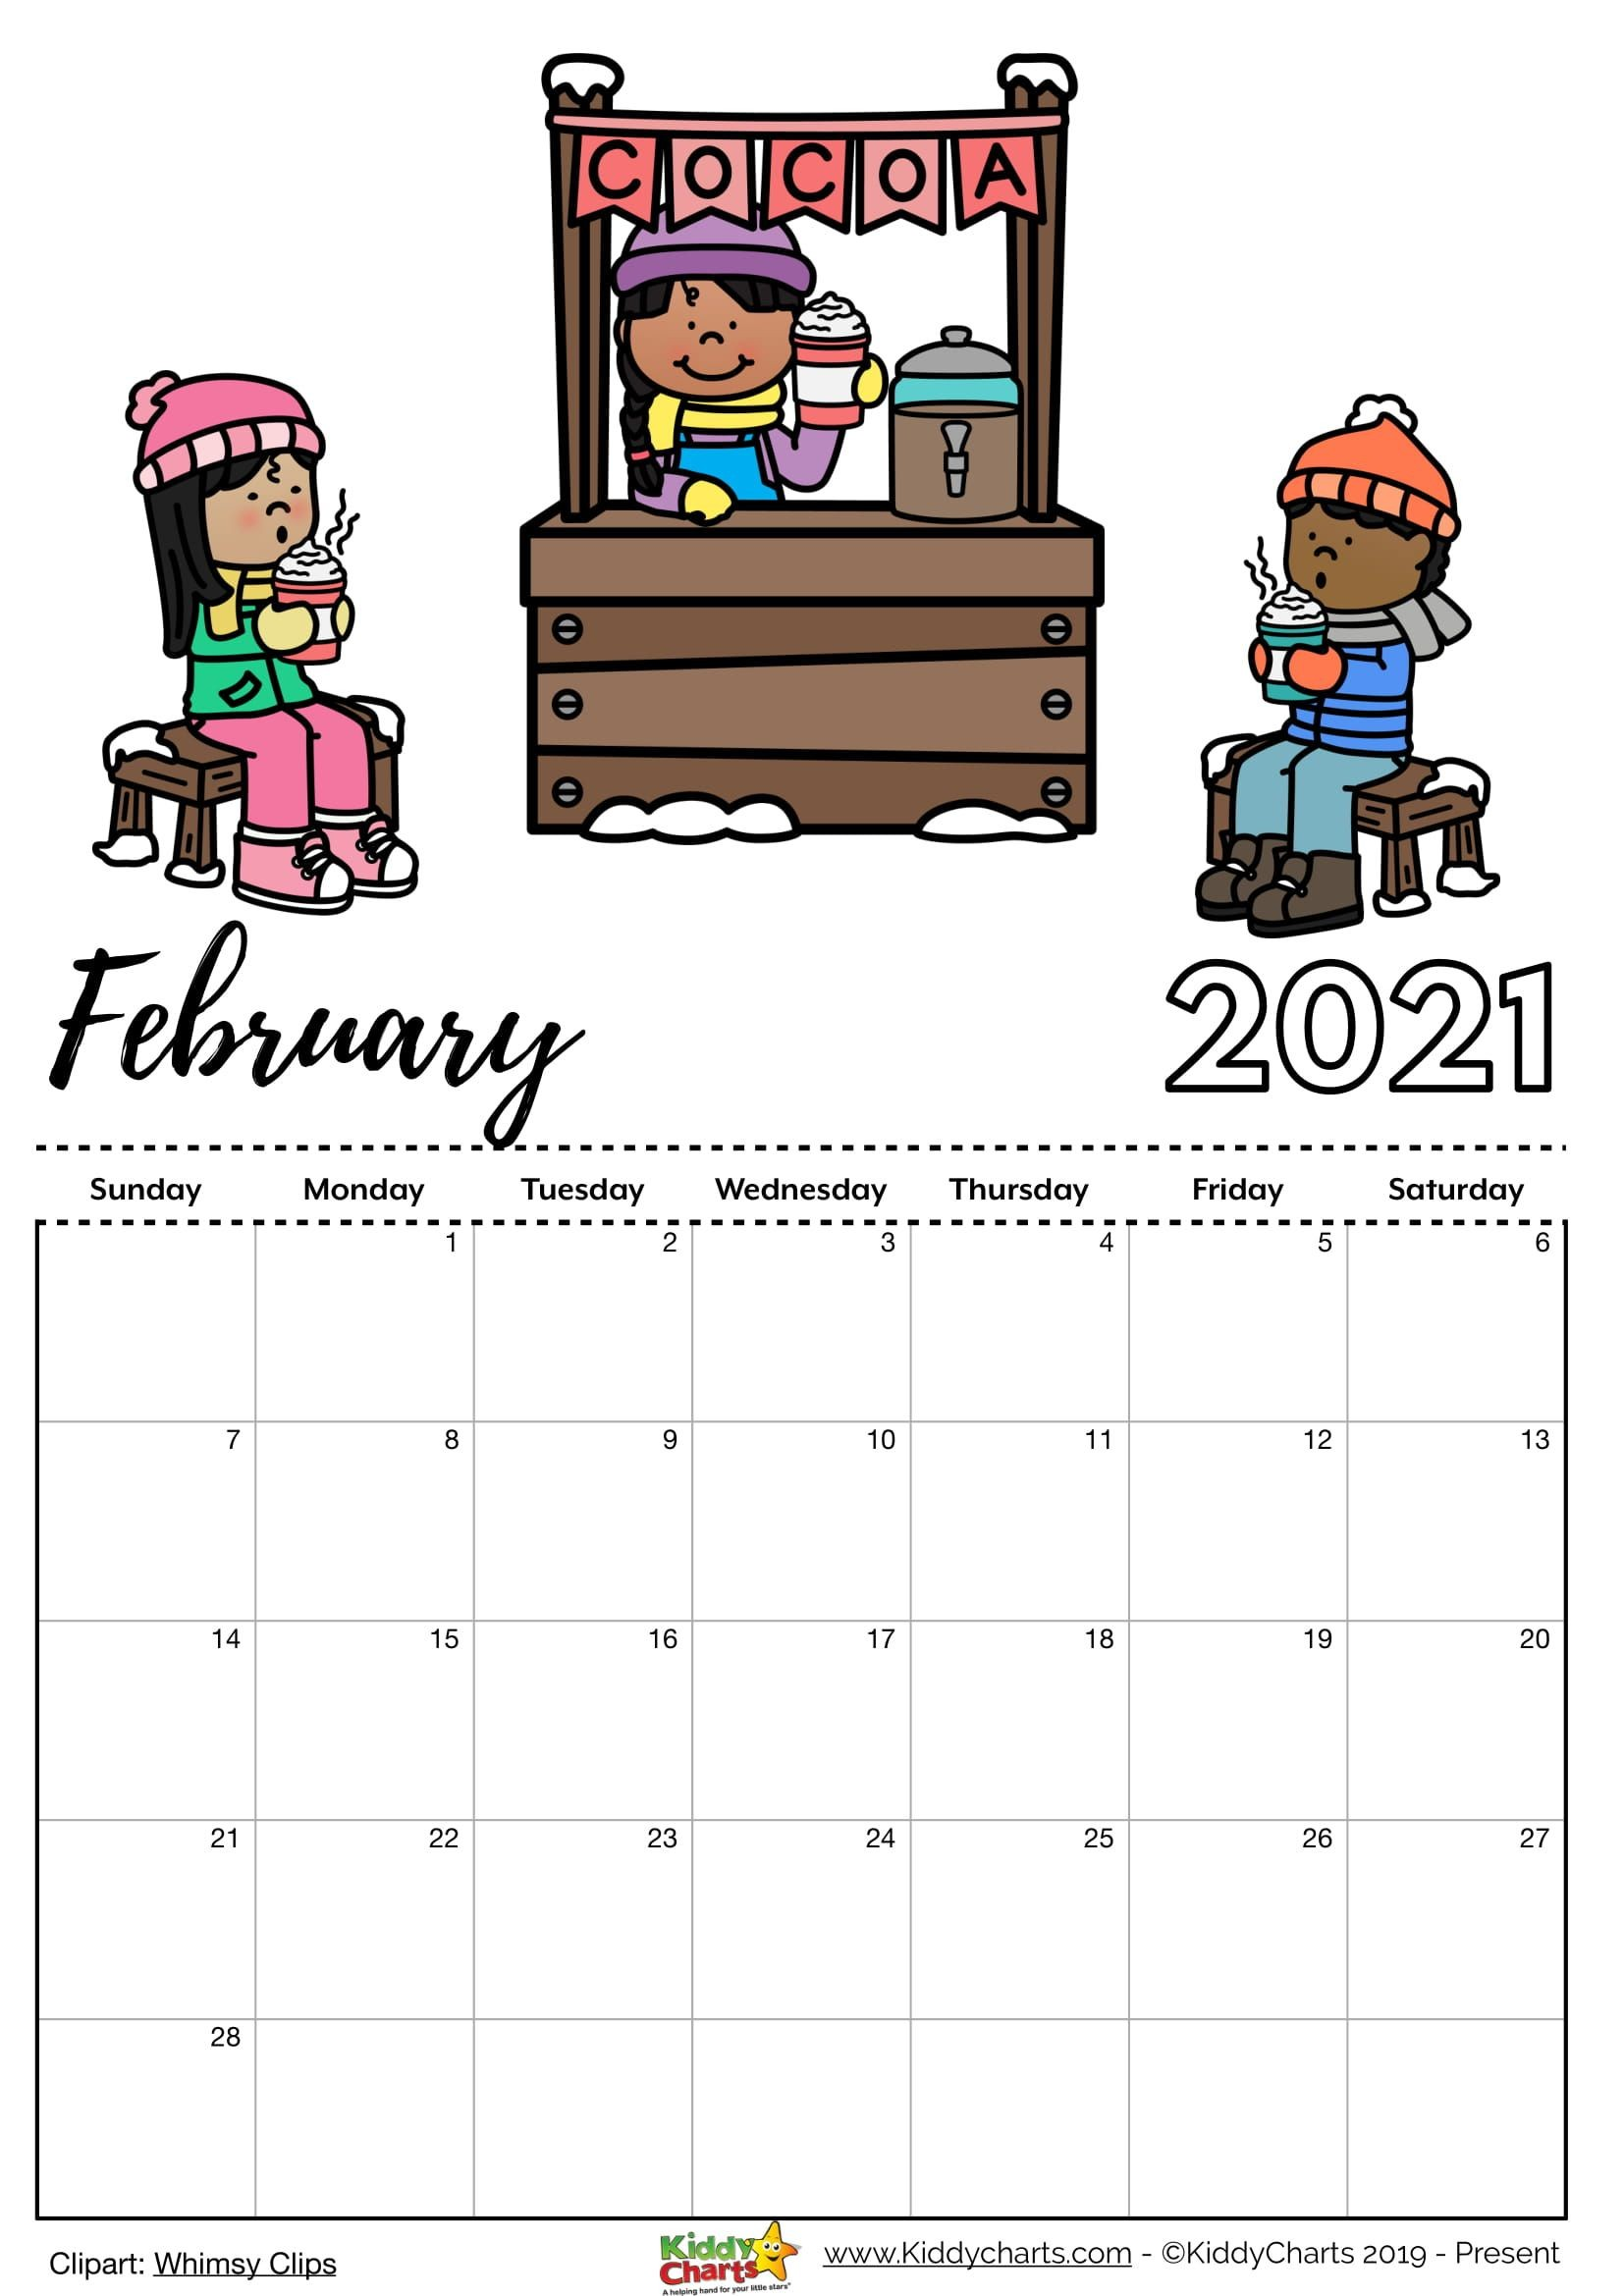 Check our new free printable 2021 calendar in 2020